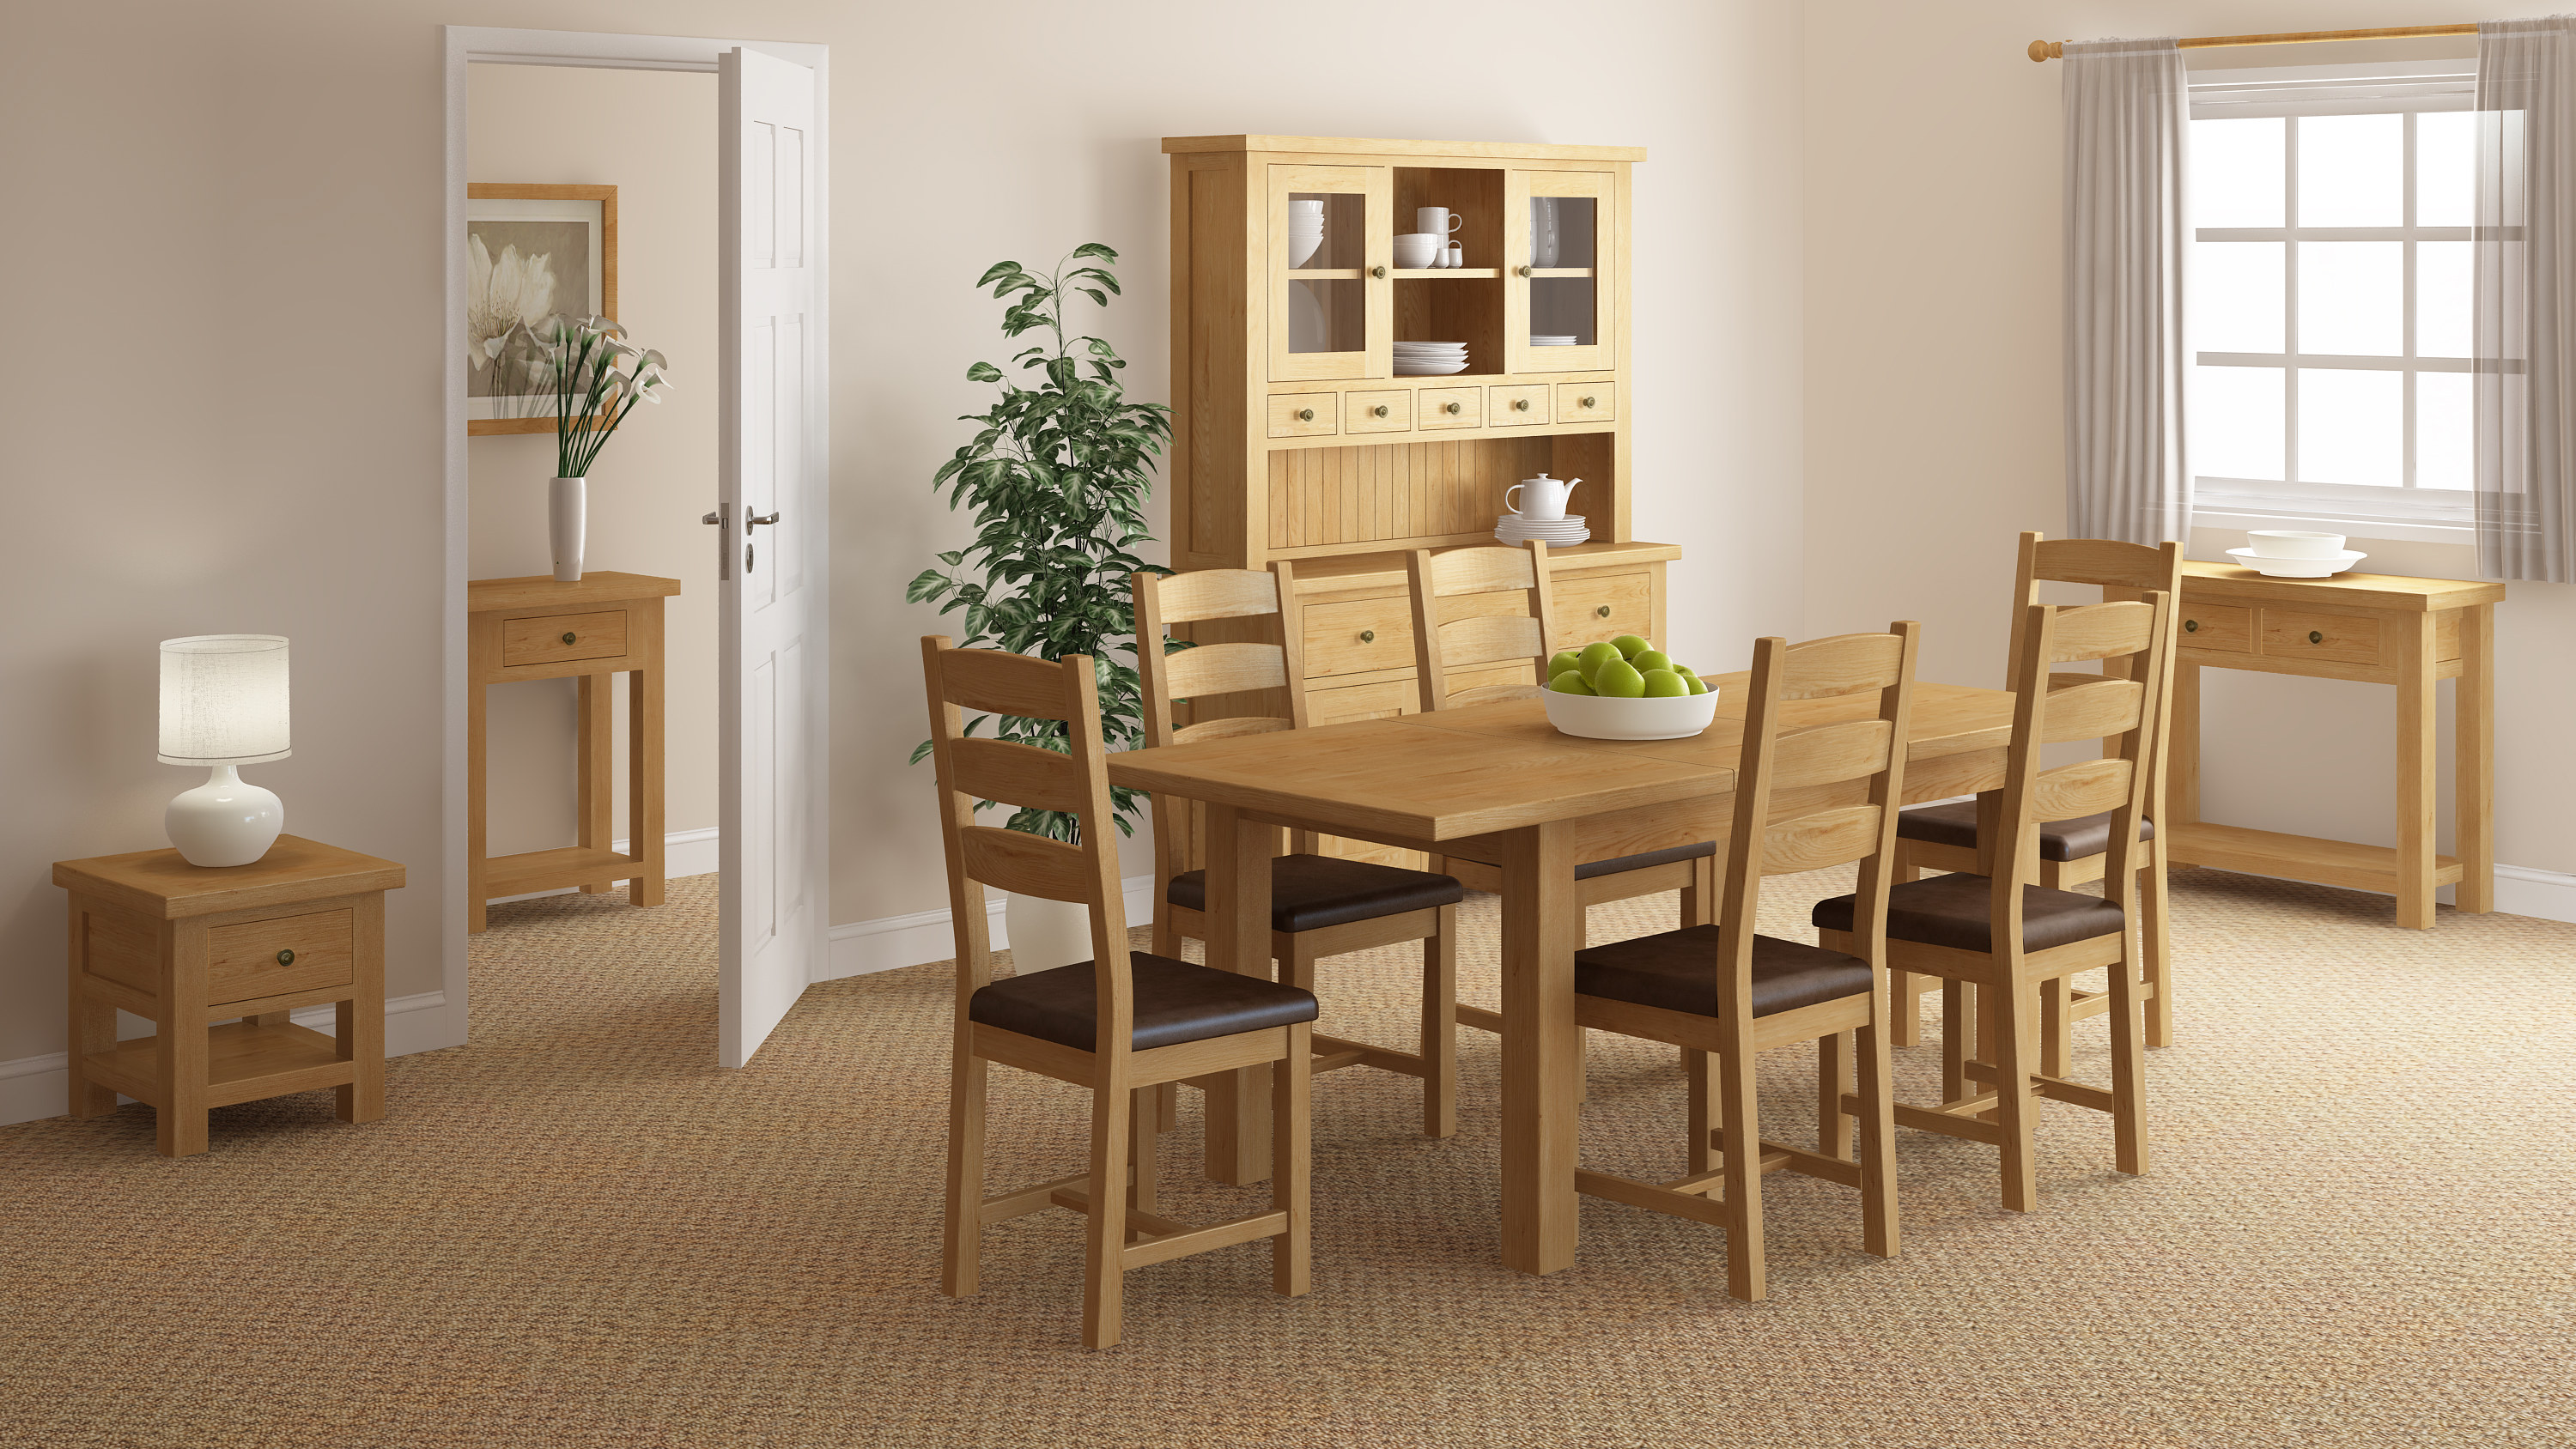 Rustique Home 100% Solid Oak Dining furniture. The shot has a dining table and chairs which are natural oak color. The Chairs and table are natural oak straight parrellel back panels. The dining room is completed by a bookcase, coffee table, a sideboard and a matching console table.